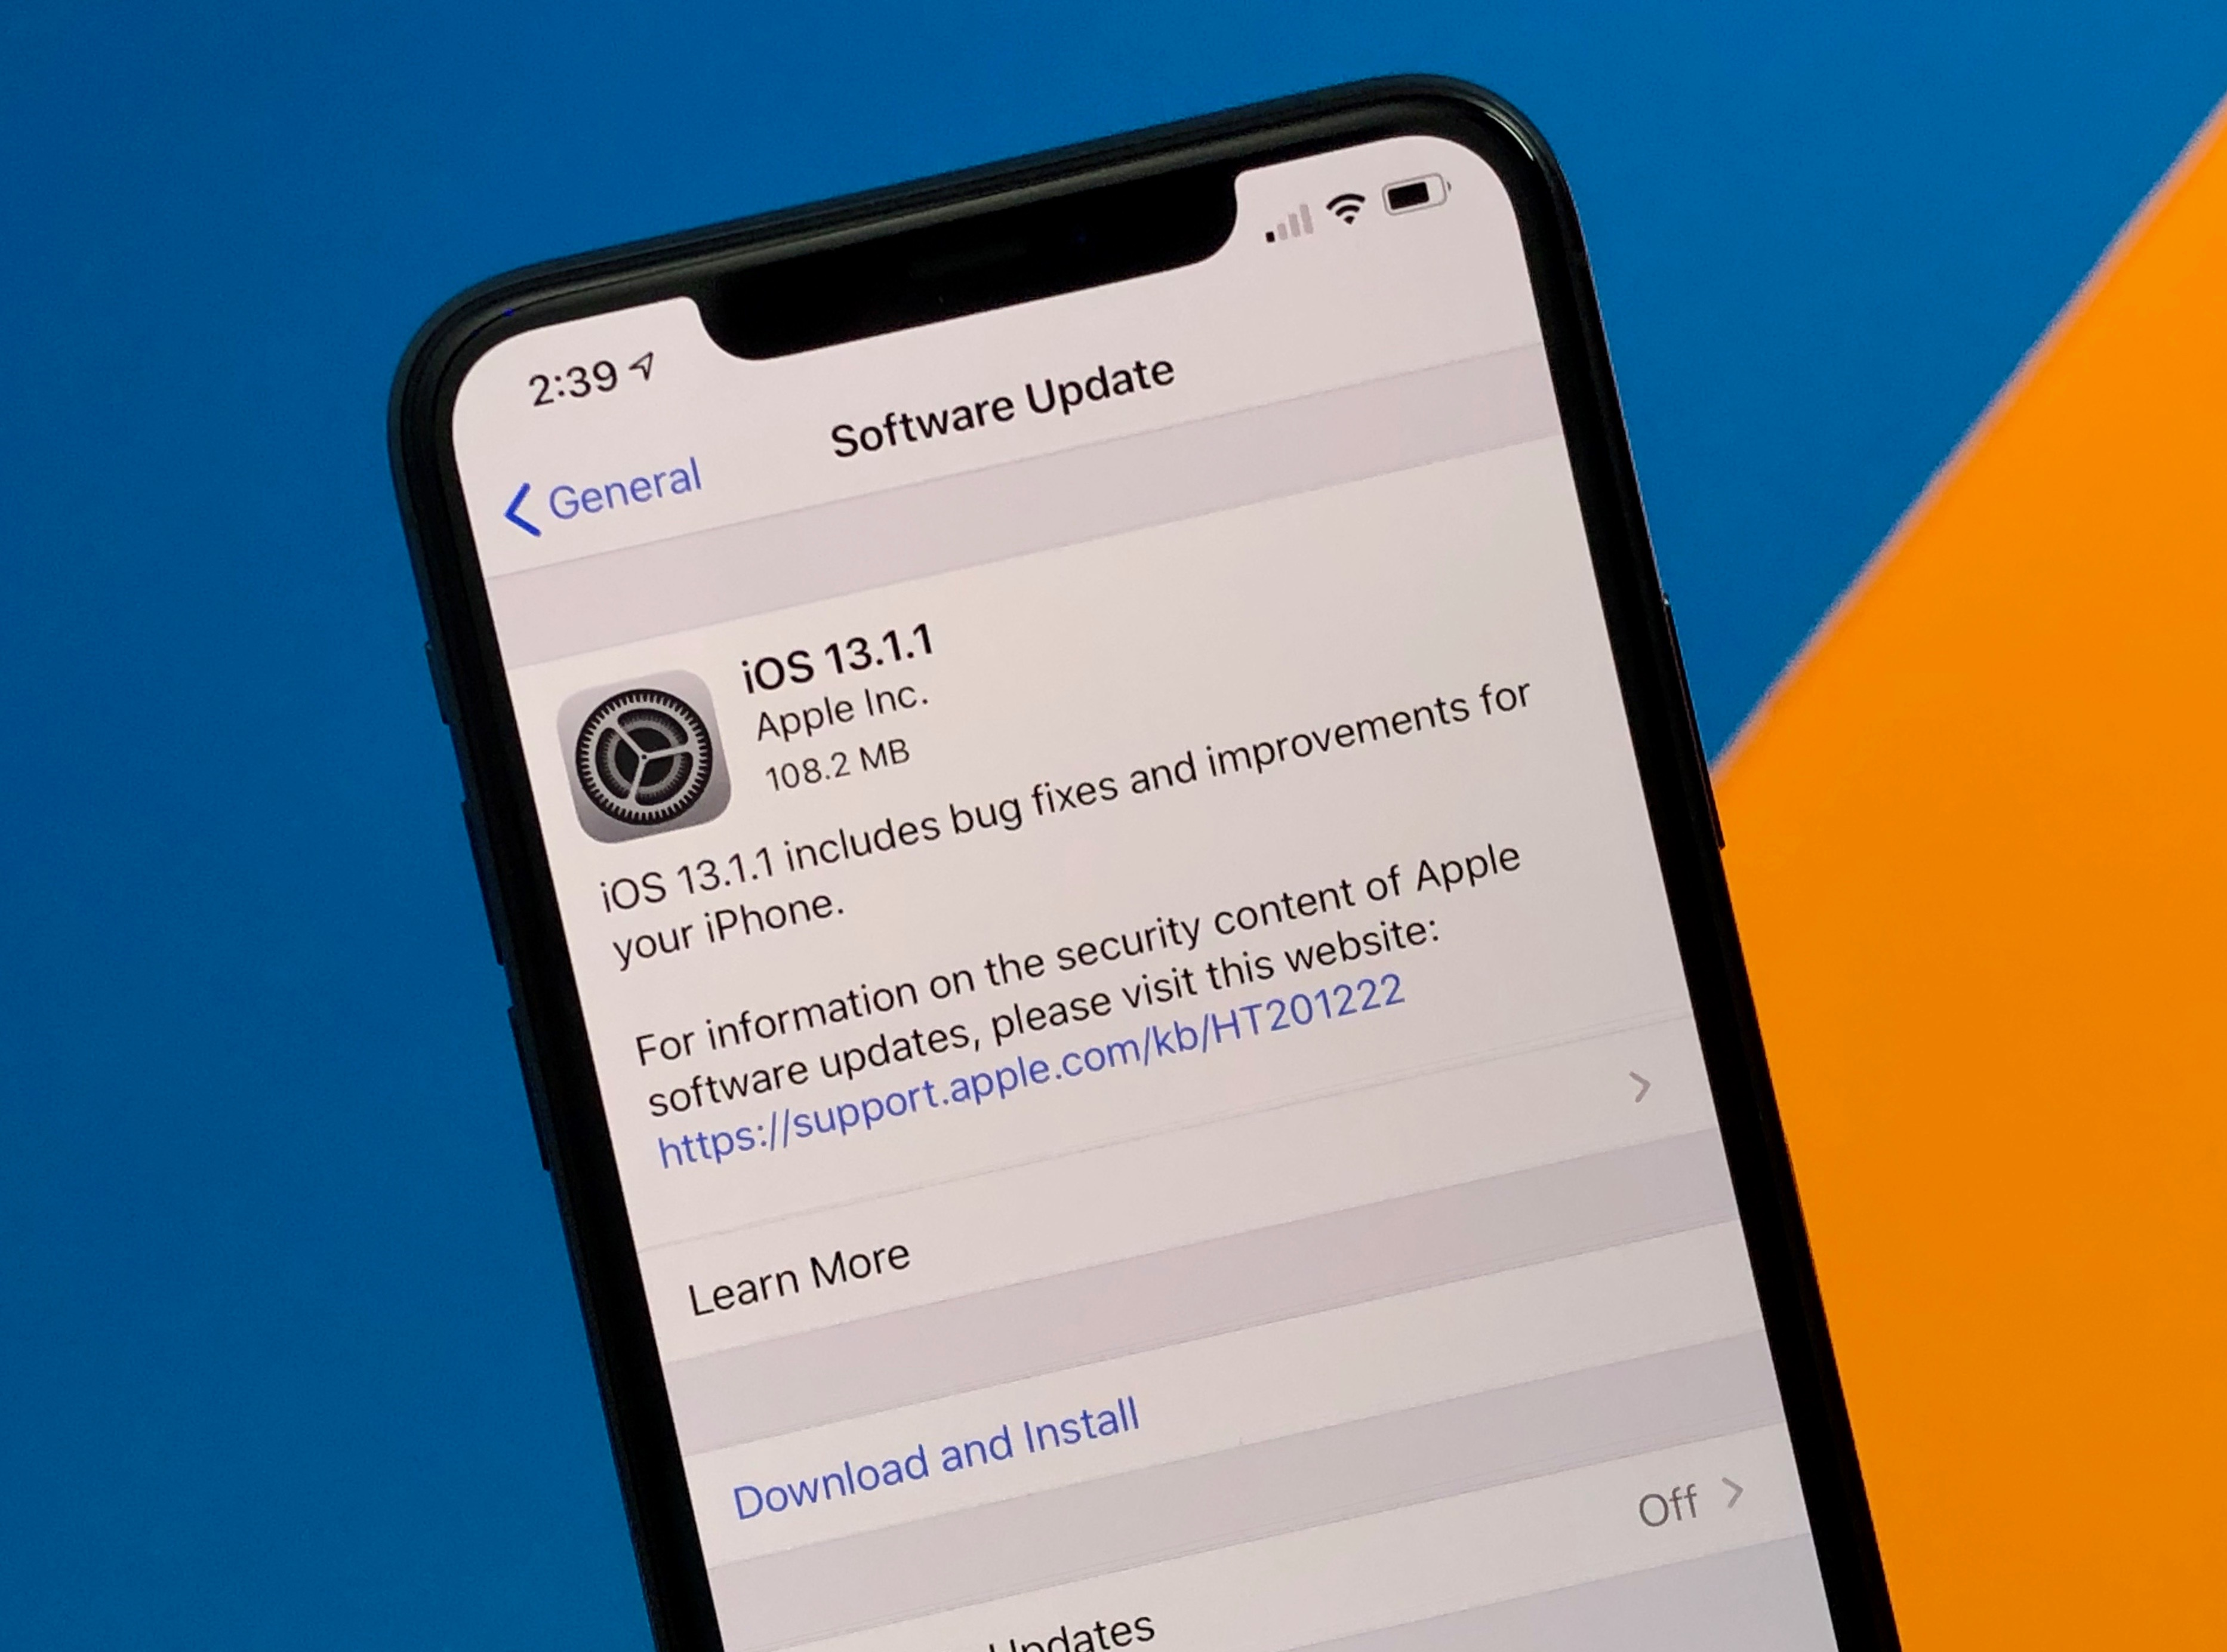 5 Things to Know About the iOS 13.1.1 Update